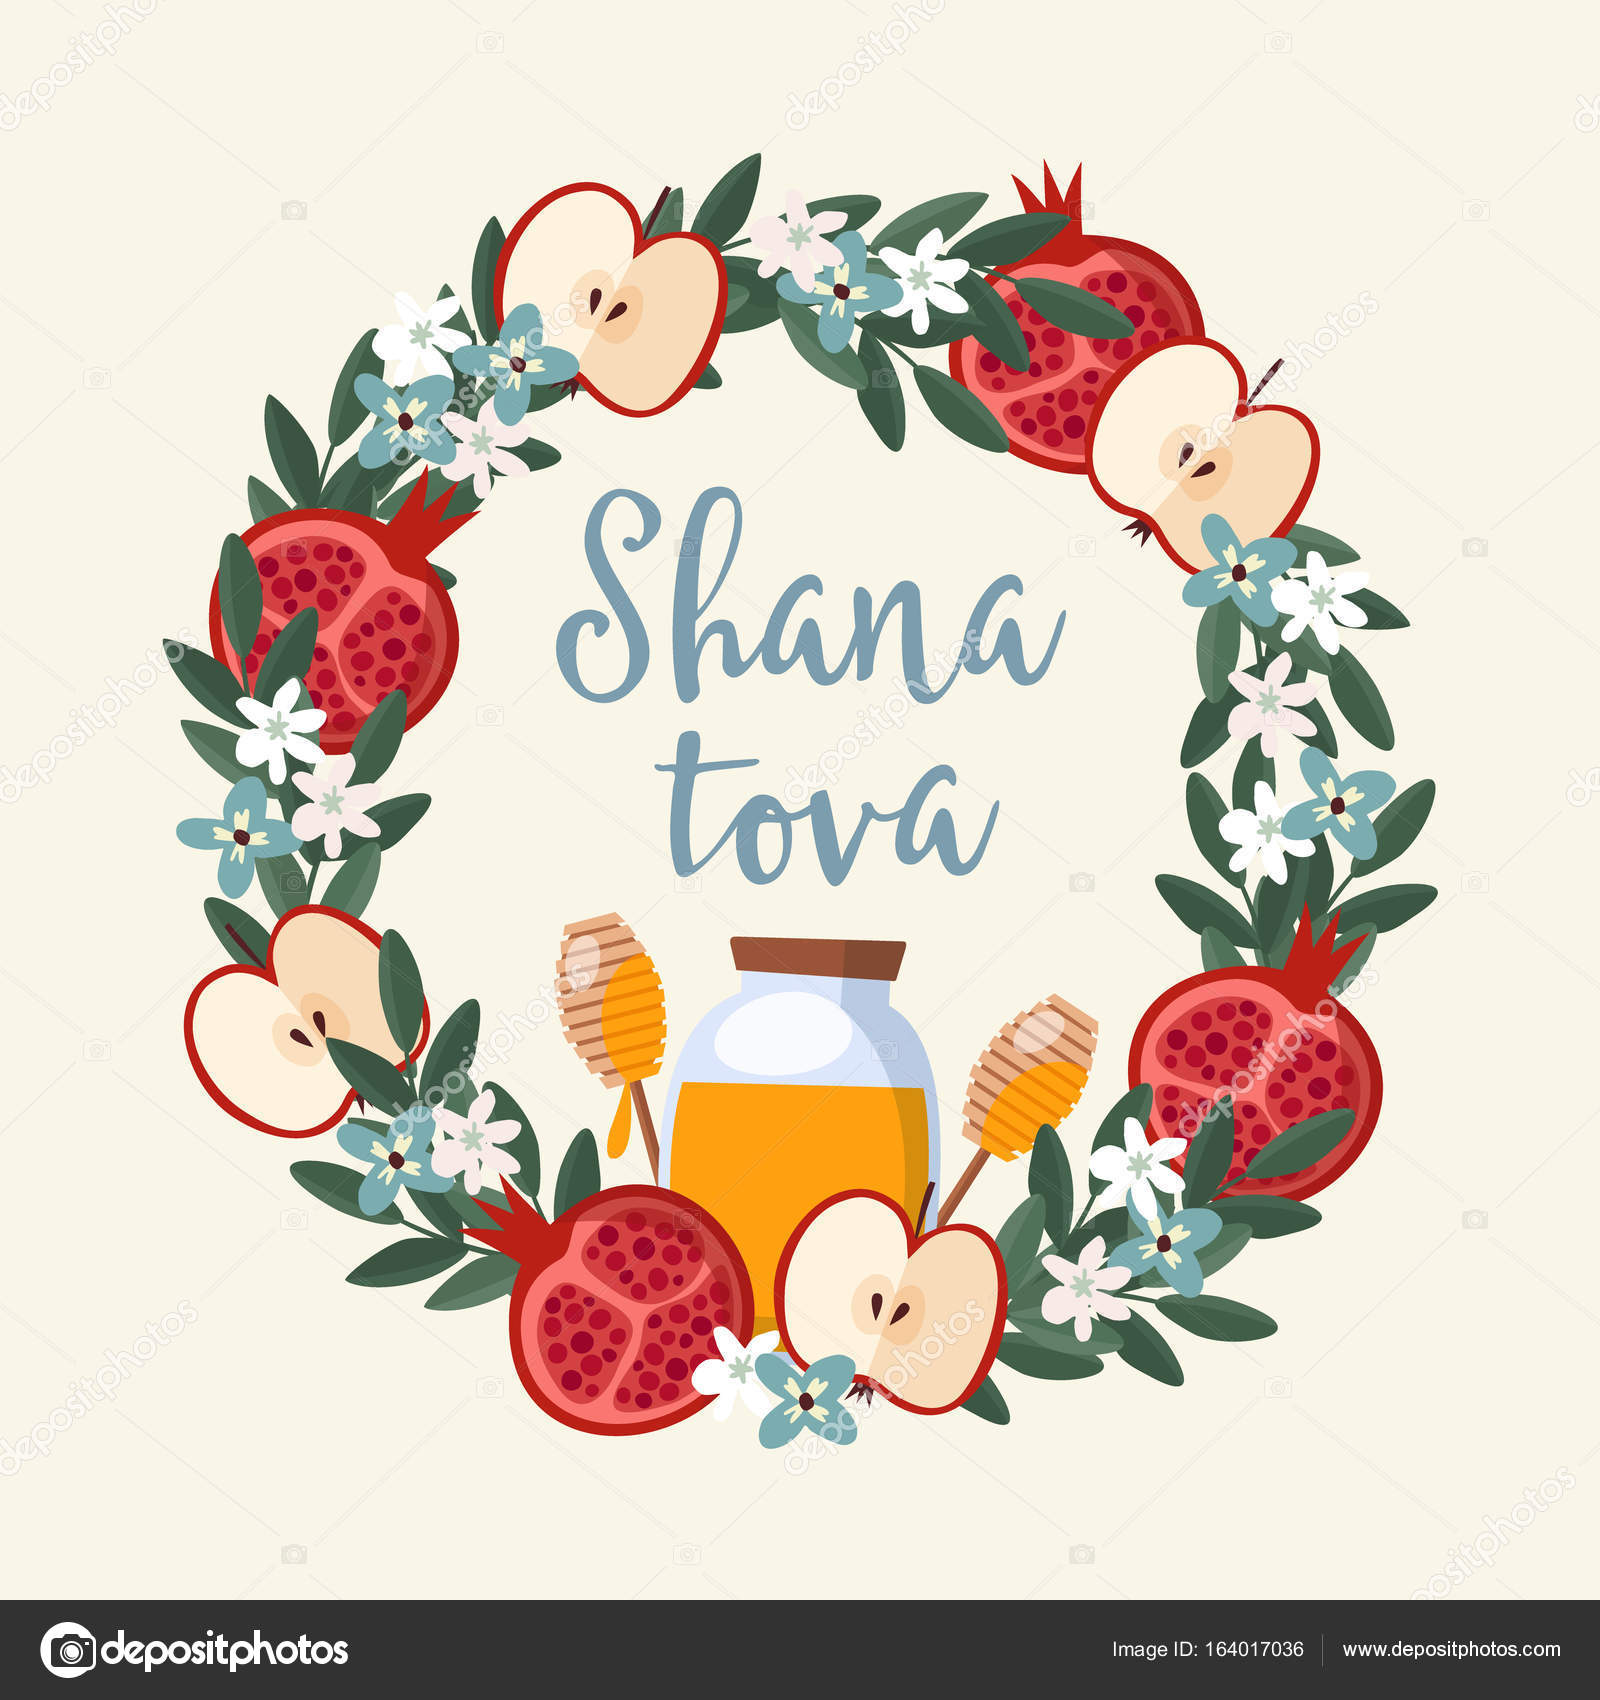 Shana tova greeting card invitation for jewish new year rosh shana tova greeting card invitation for jewish new year rosh hashanah floral wreath made kristyandbryce Choice Image